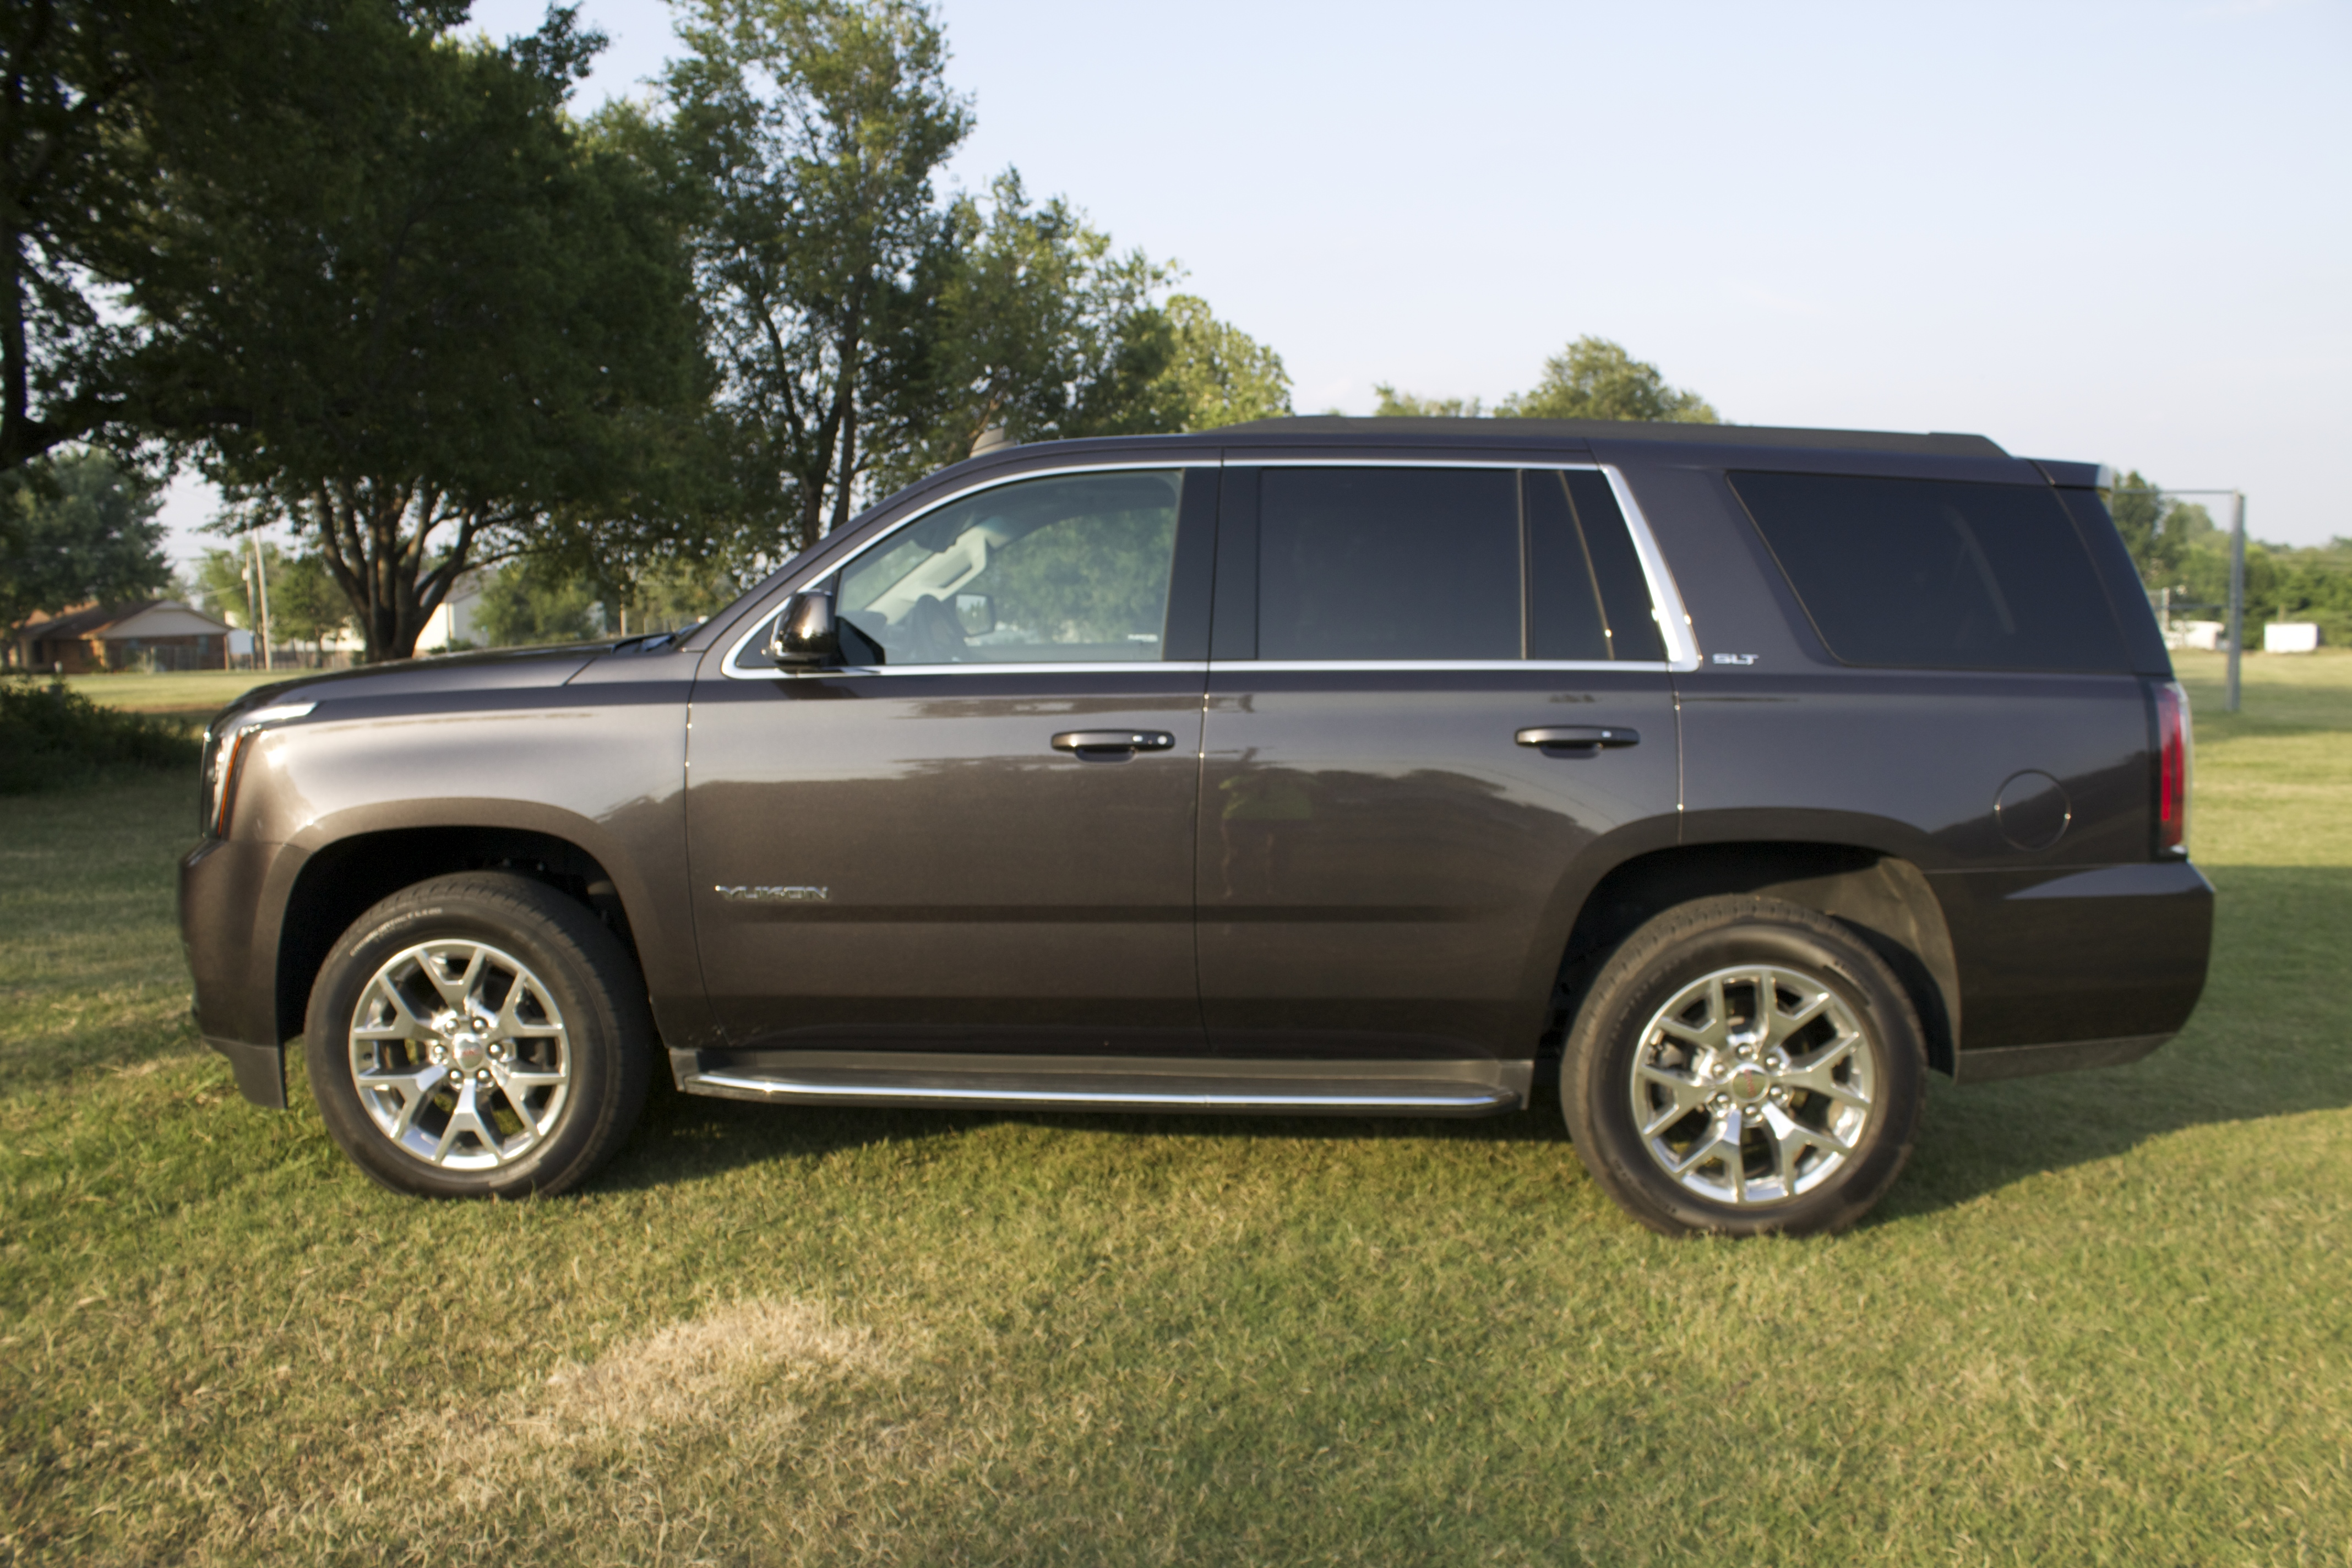 content detail introduces family yukonxl sep more en media gmc yukon pages yukondenali capable new news us all